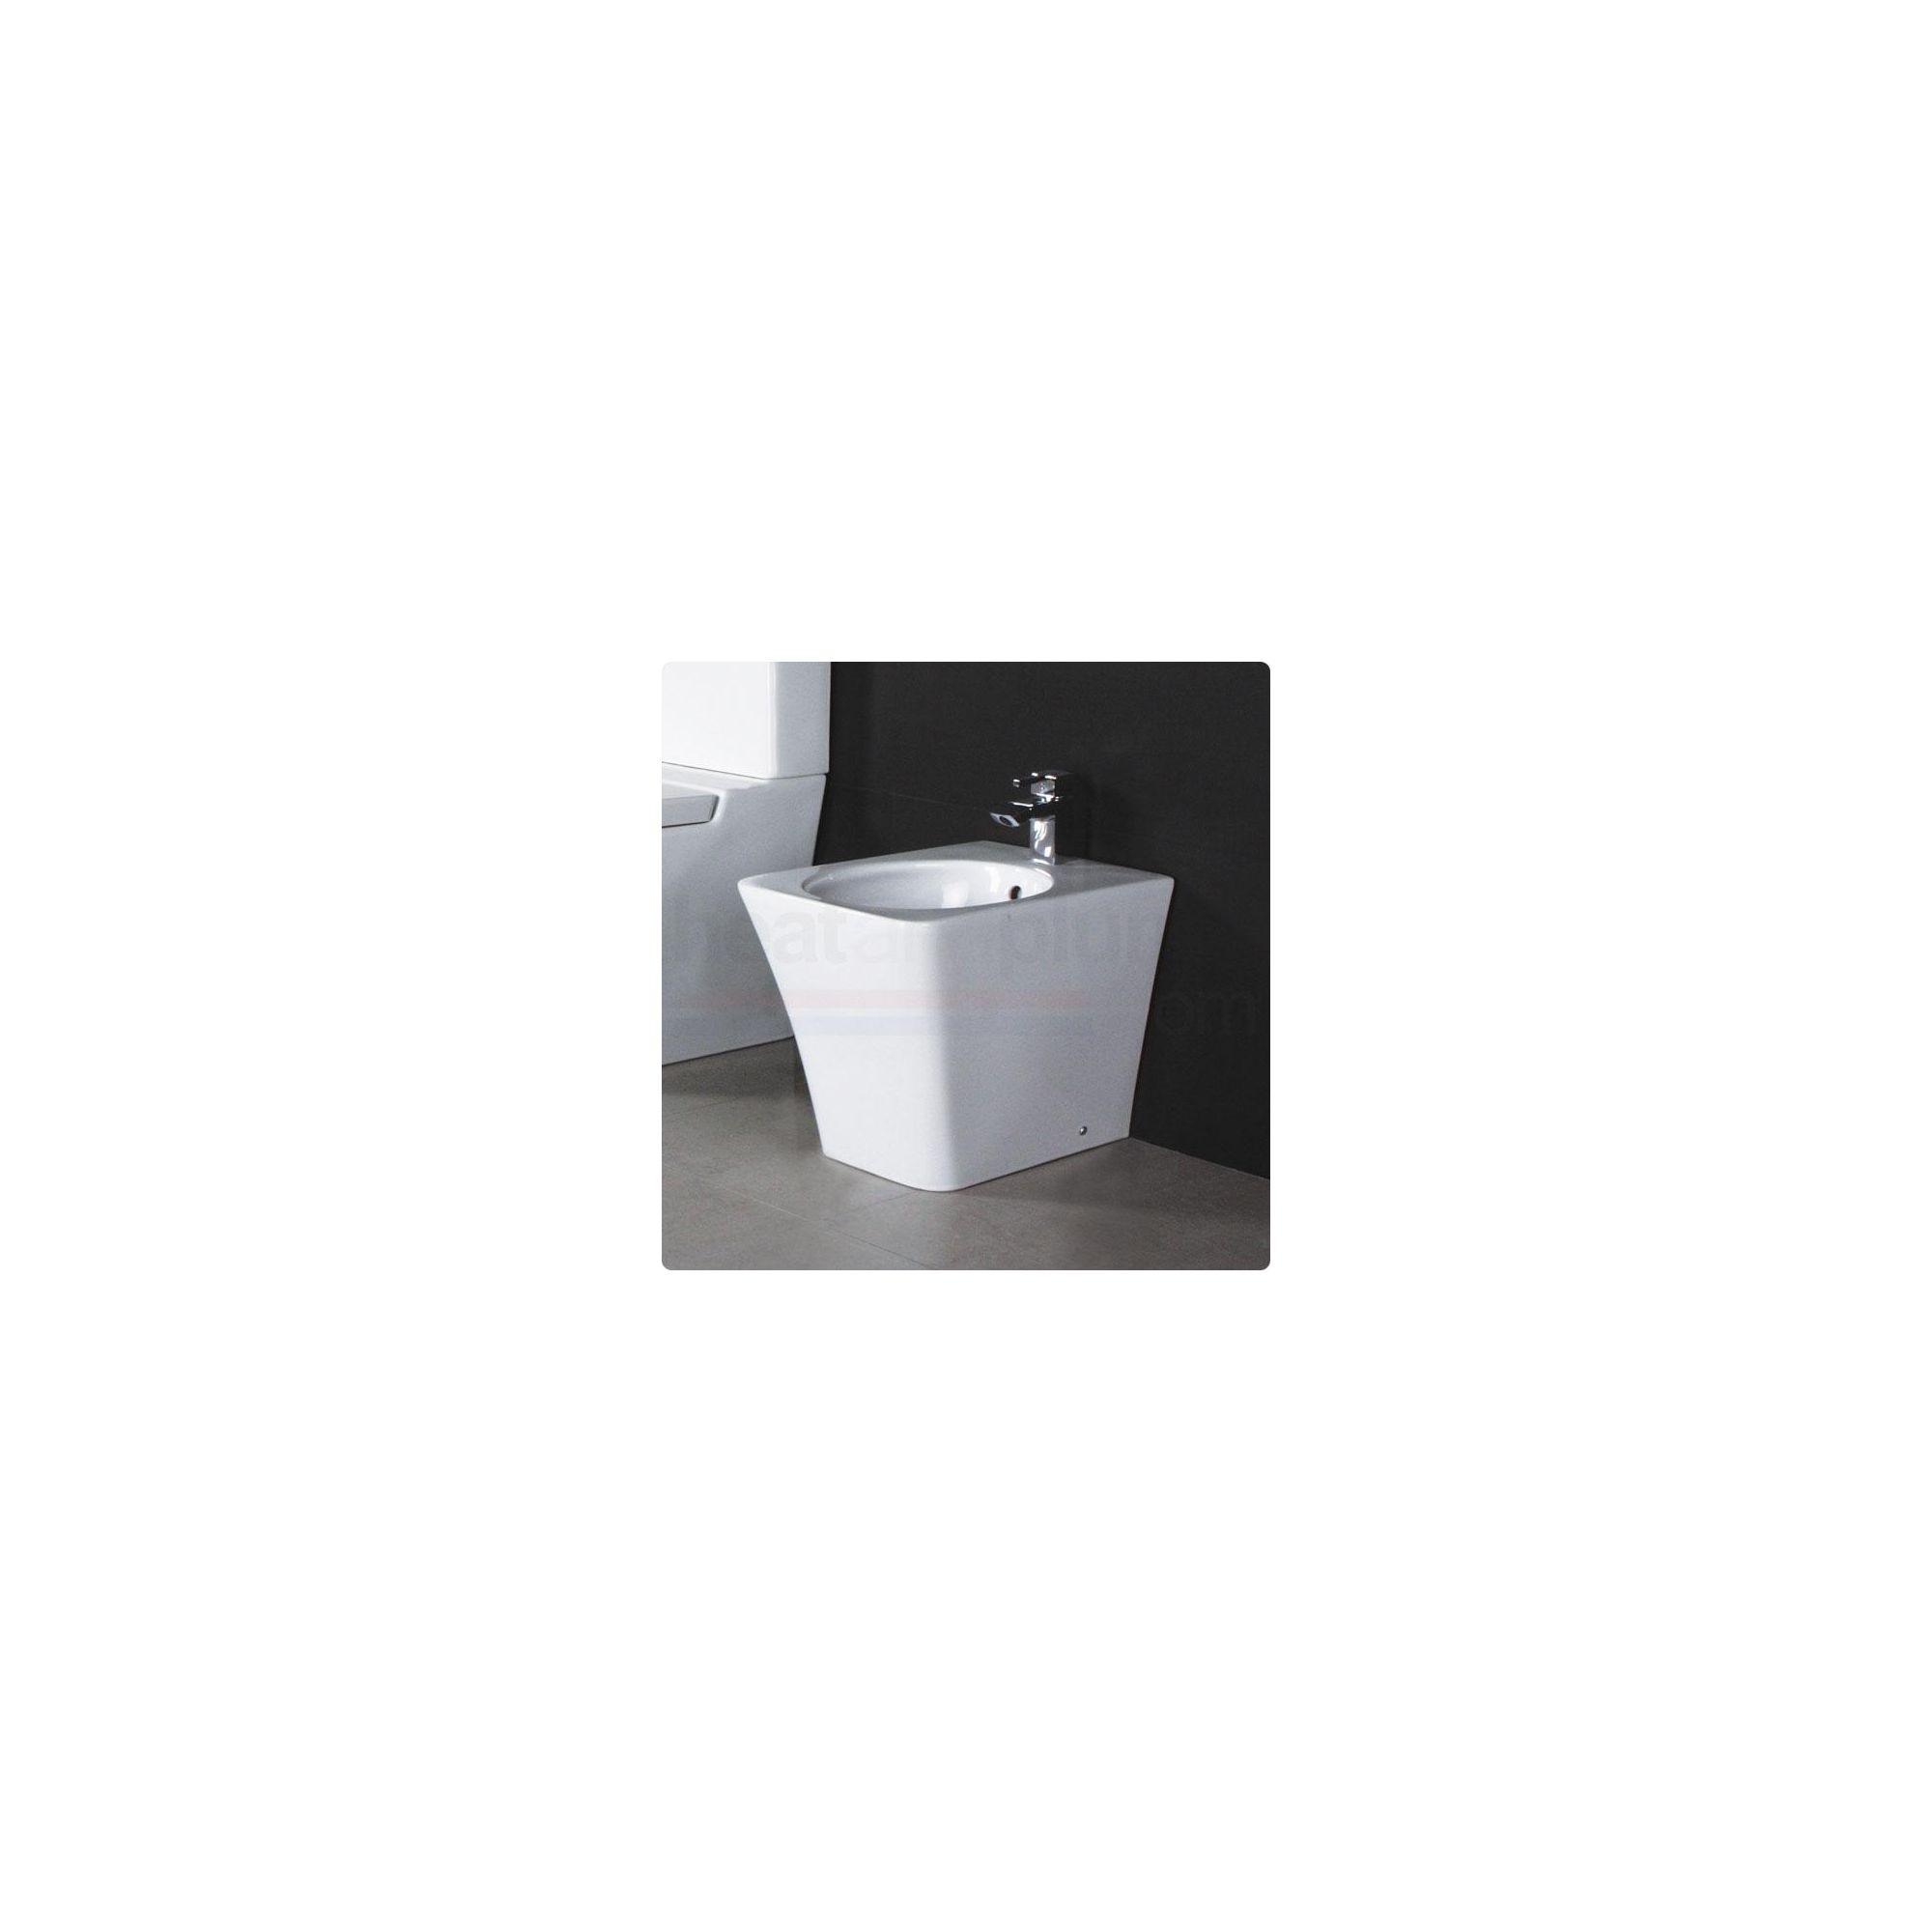 RAK Opulence White Floor Standing Bidet at Tesco Direct